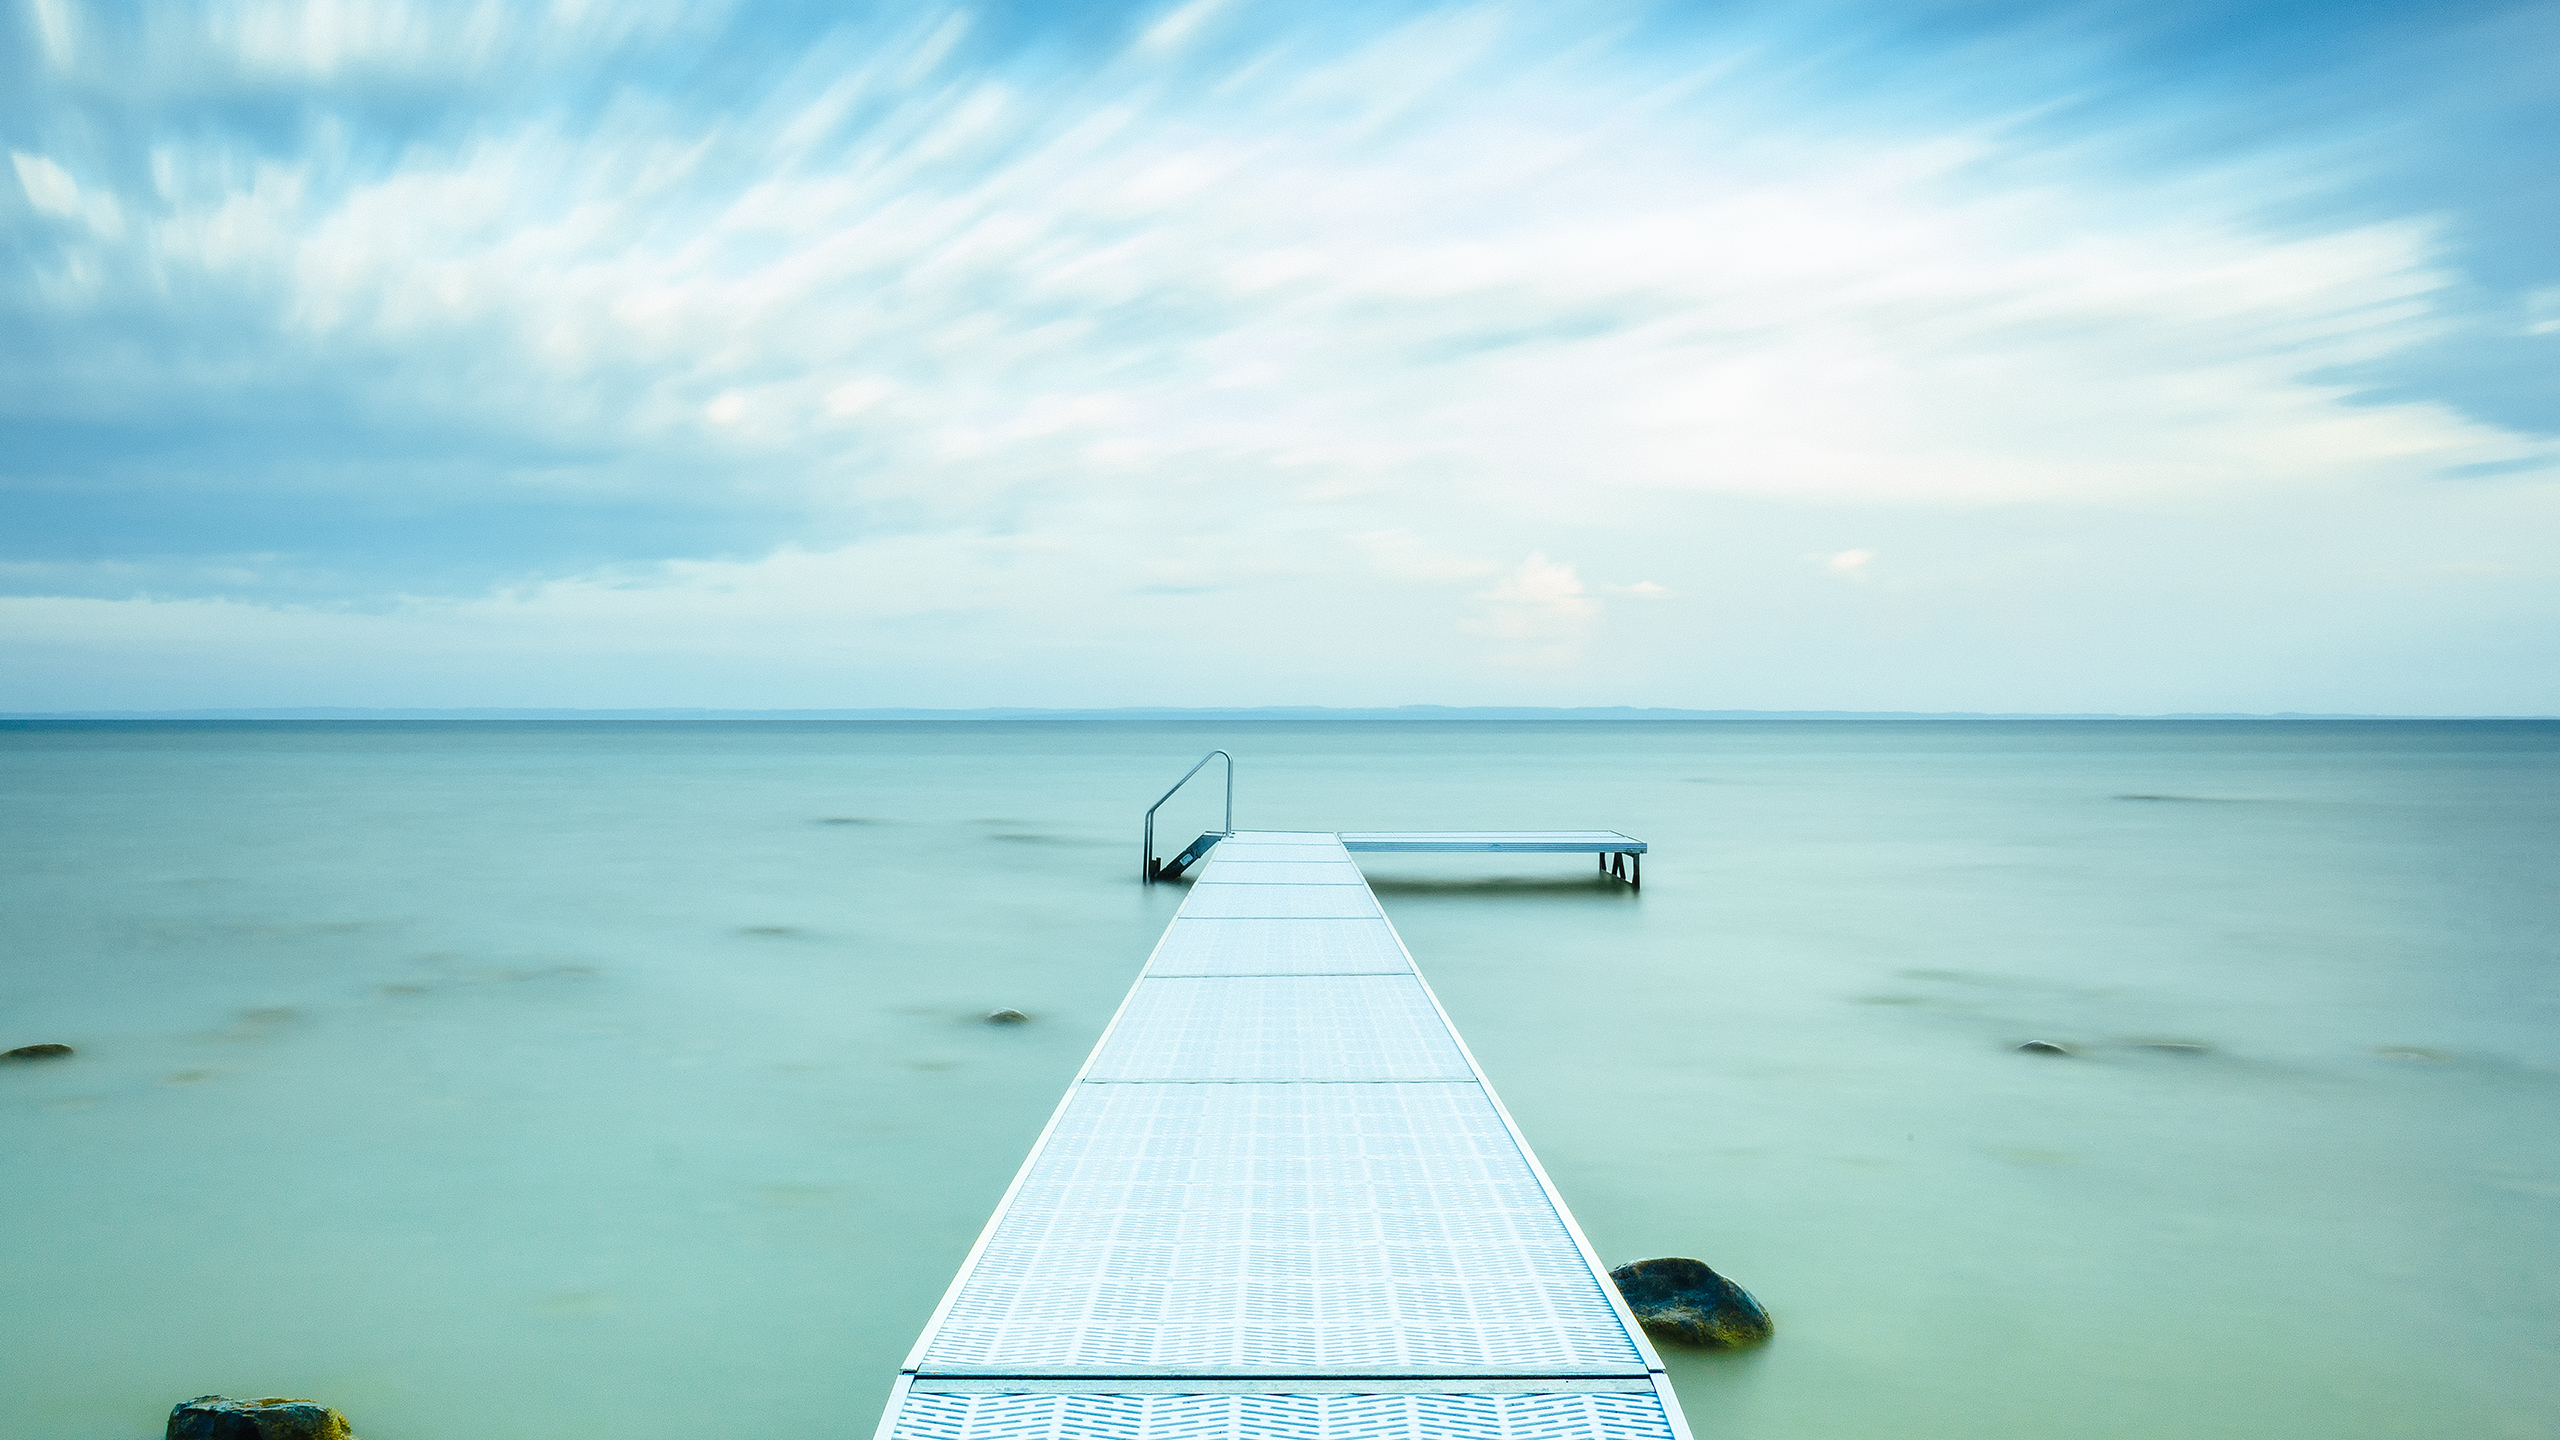 peaceful_morning_wallpaper_2560x1440